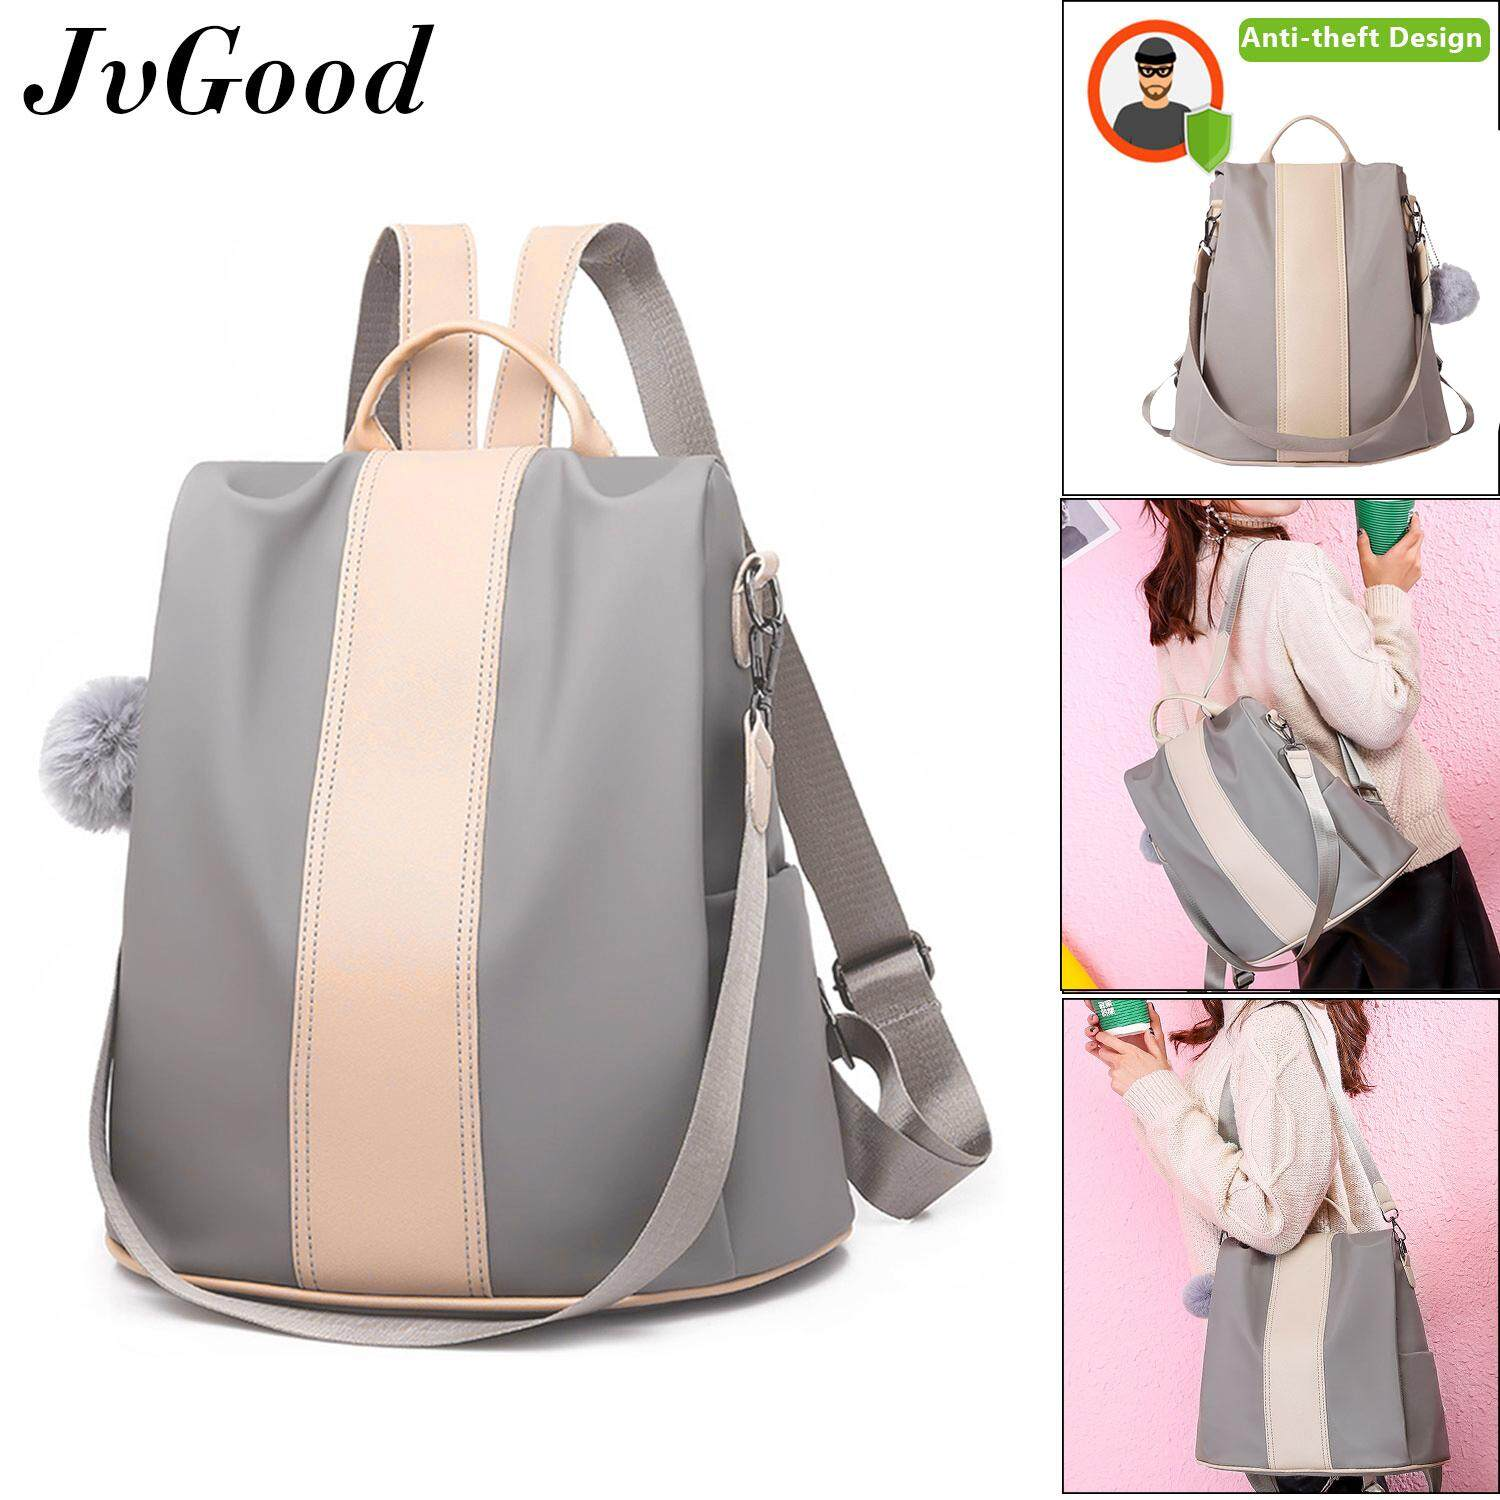 7a4a55539203 JvGood Shoulder Backpacks Women Korean Style Sling Bag Women Bag School Bag  Waterproof Oxford Daypack Lightweight